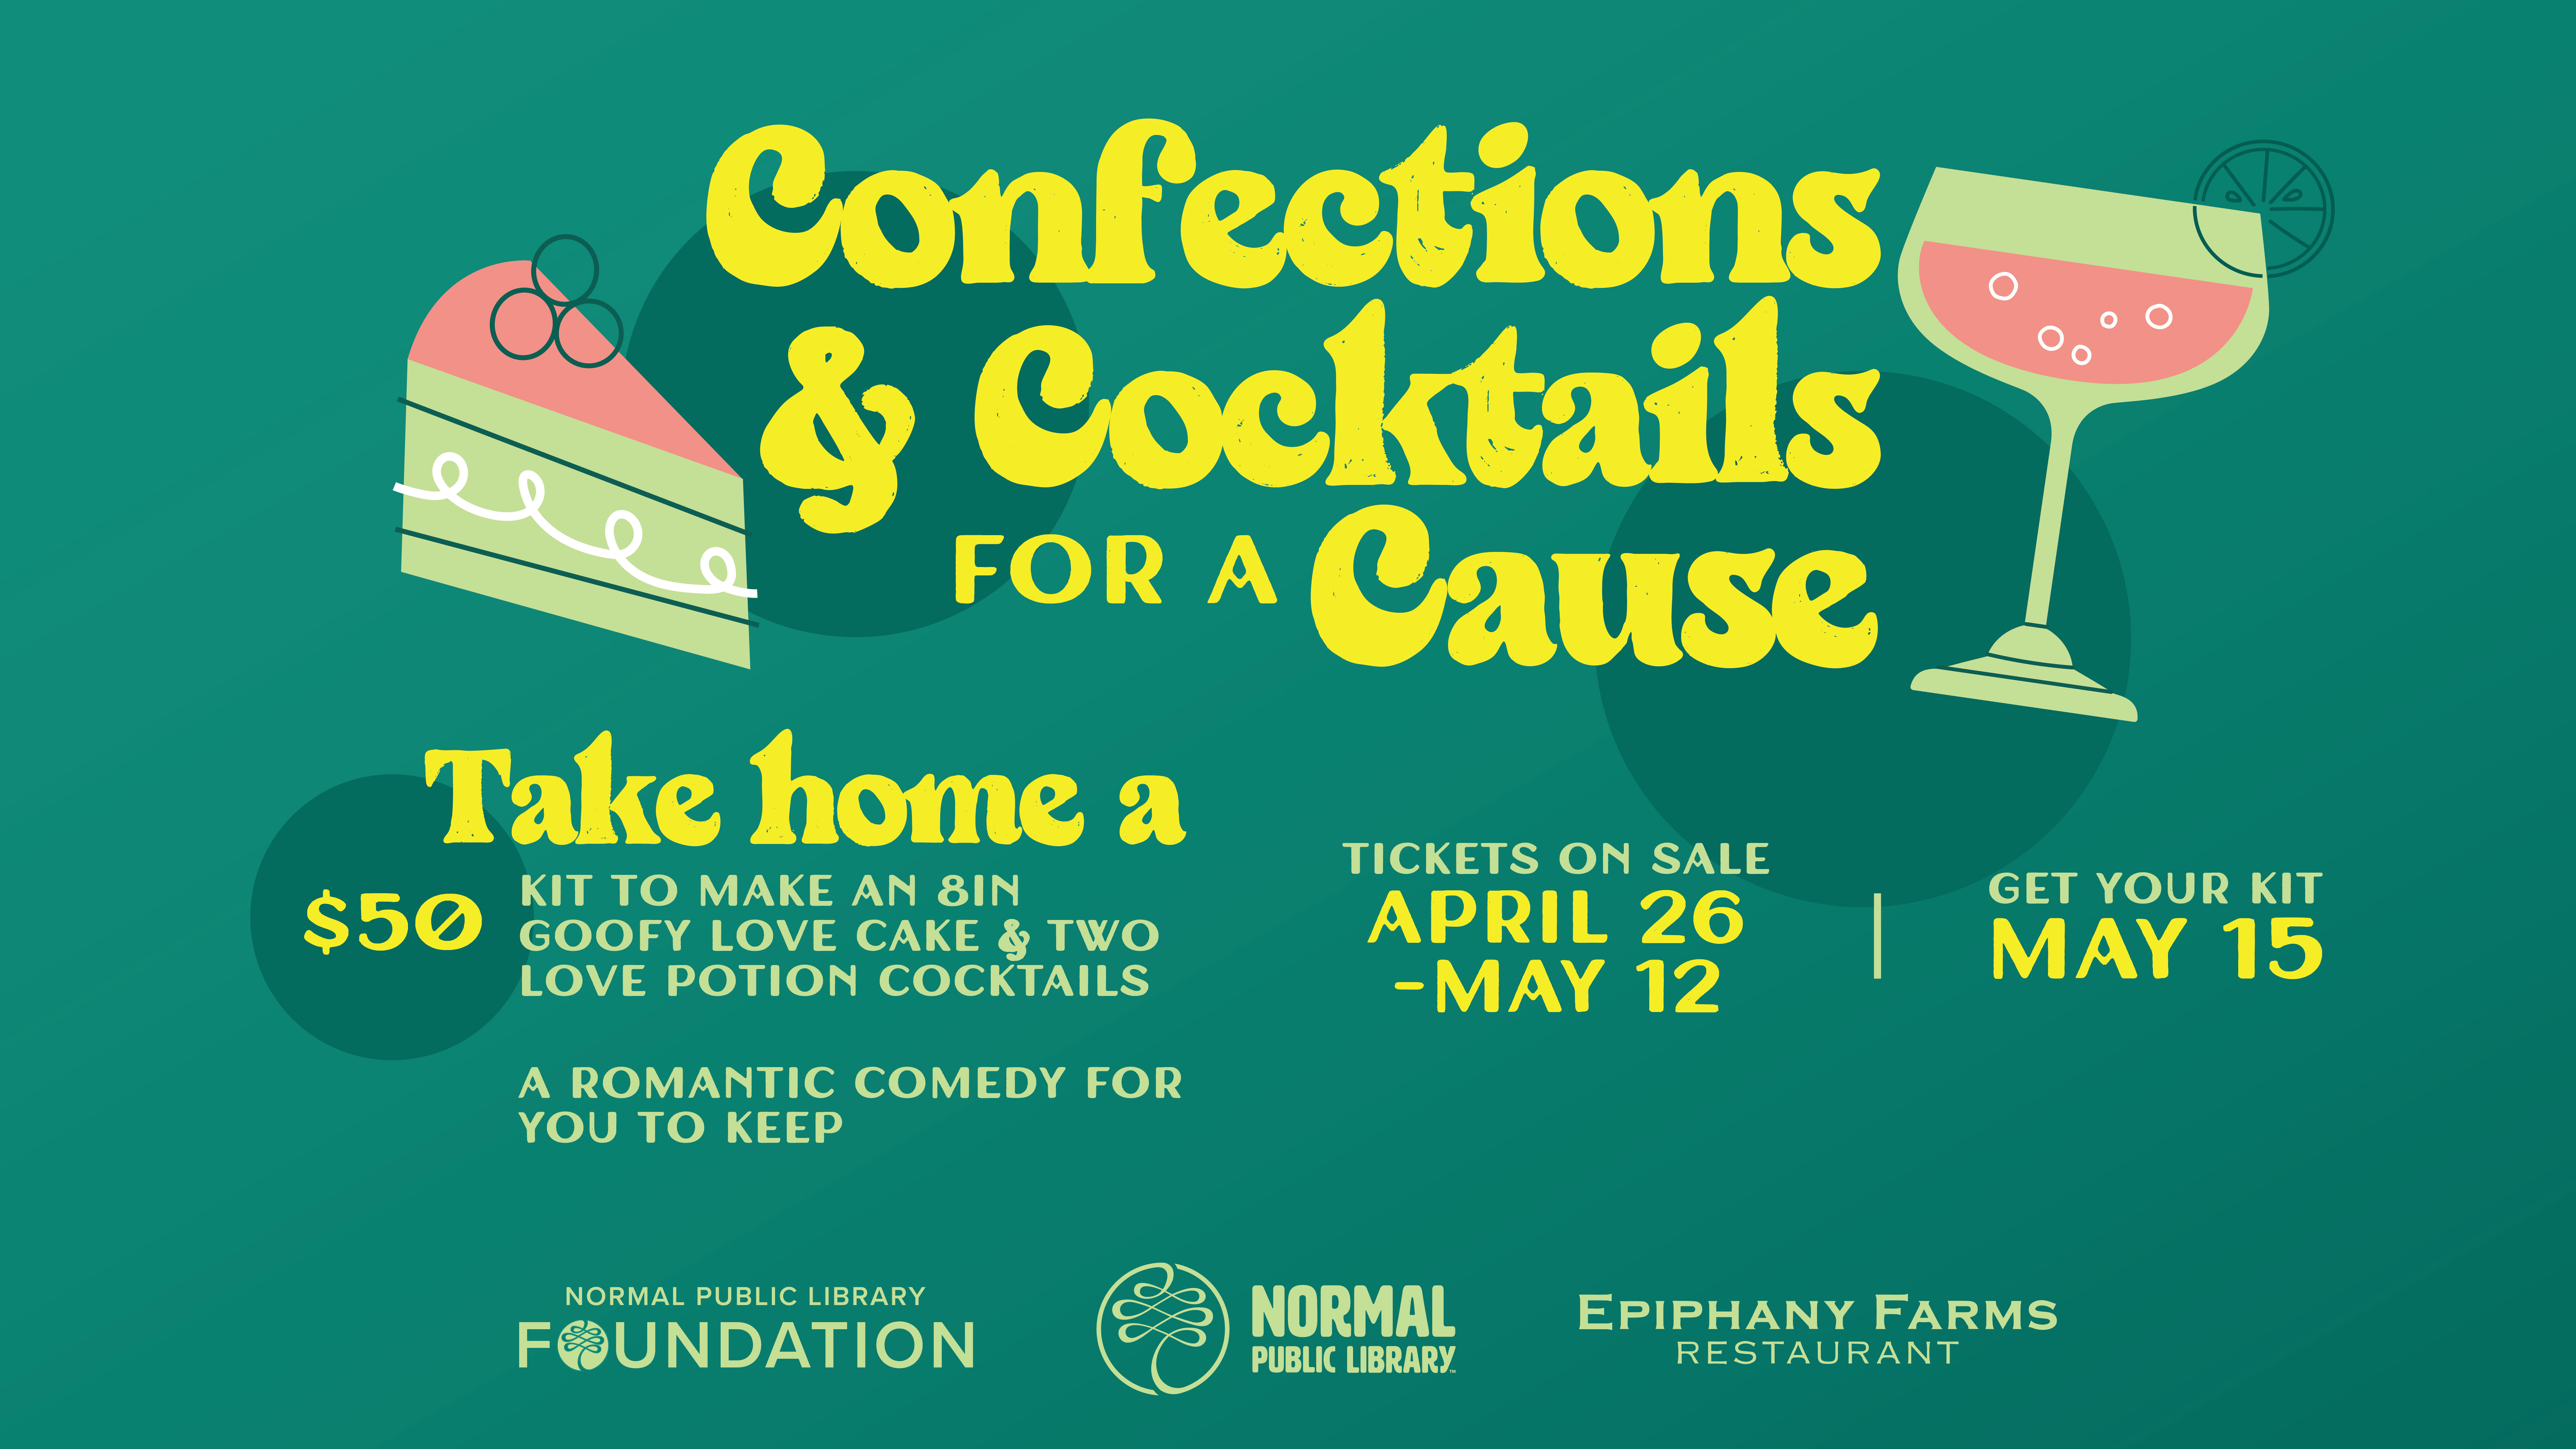 Confections & Cocktails for a Cause graphic